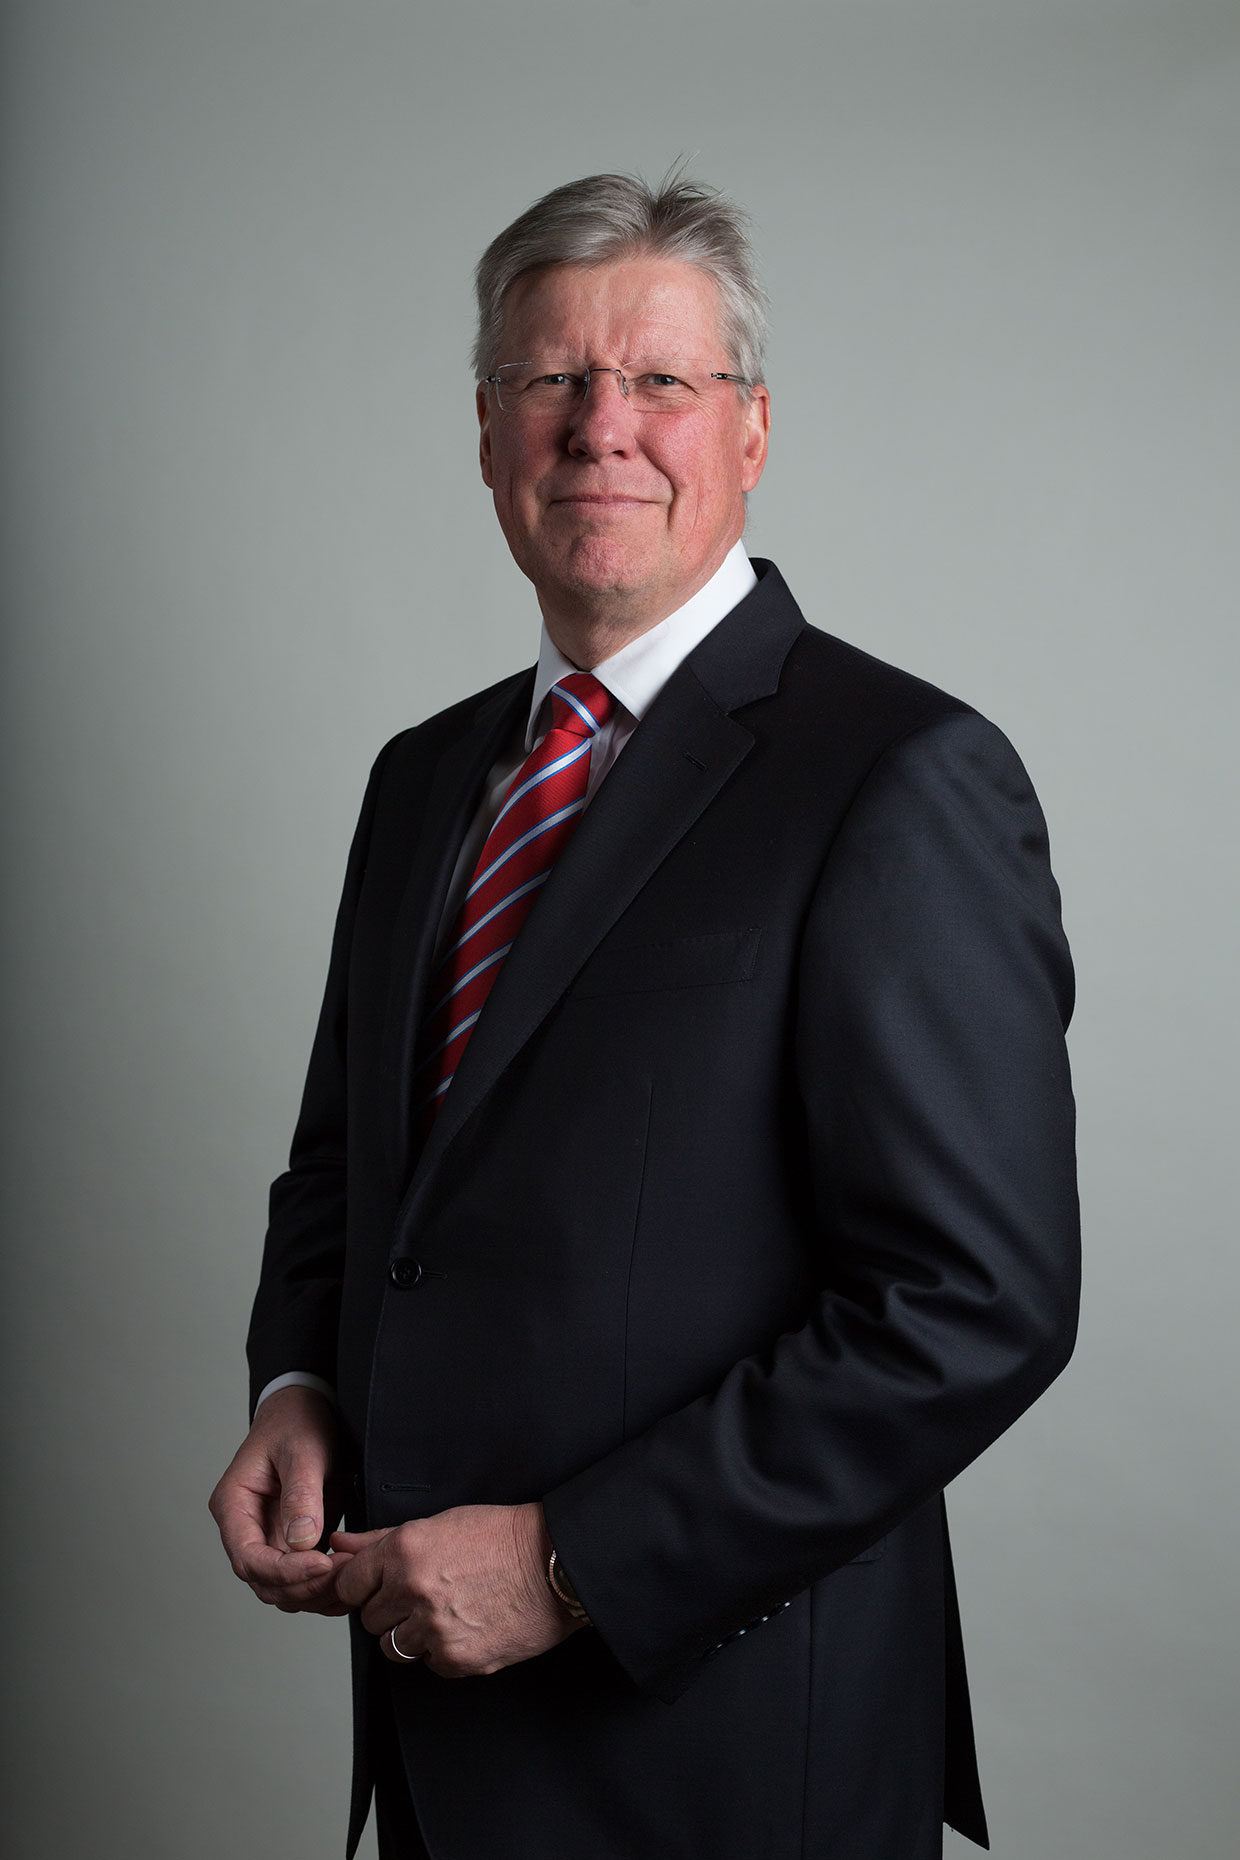 Portrait of Martin Slumbers, Chief Executive, by Scotland-based photographer Jeremy Sutton-Hibbert.